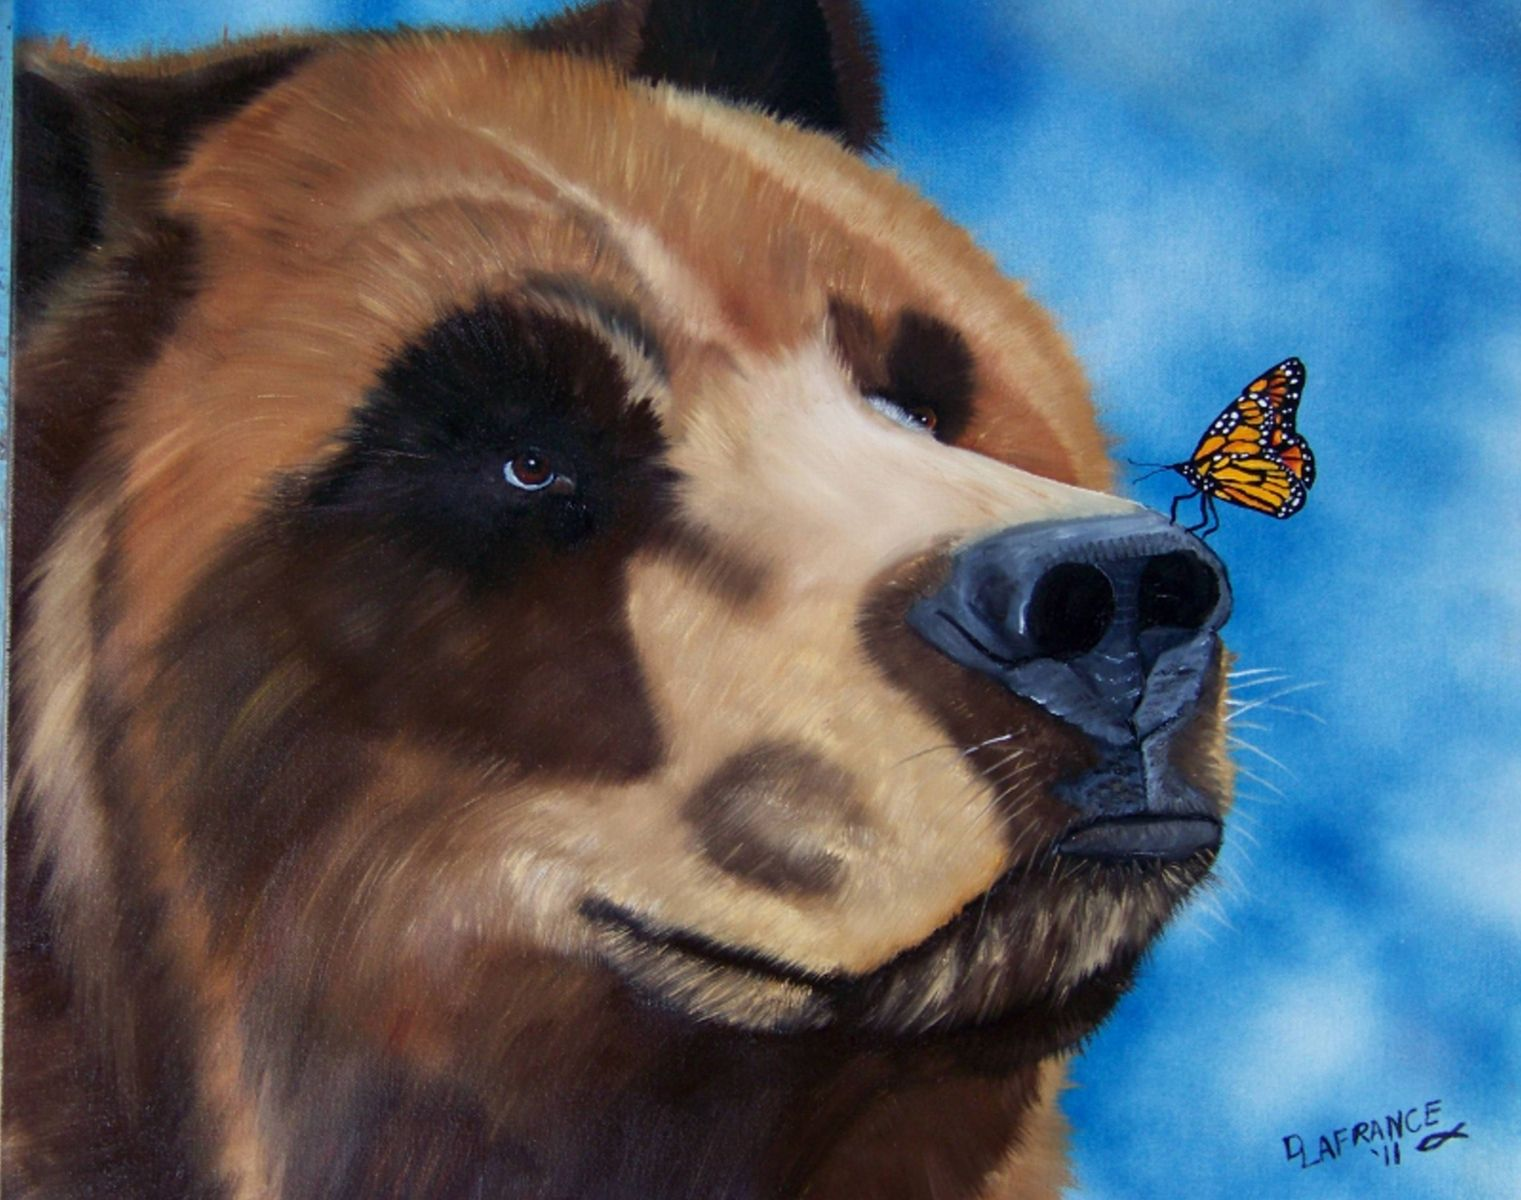 Hand Made Quot Butterfly Kisses Quot Grizzly Bear Oil Painting By Lafrance Art Custommade Com